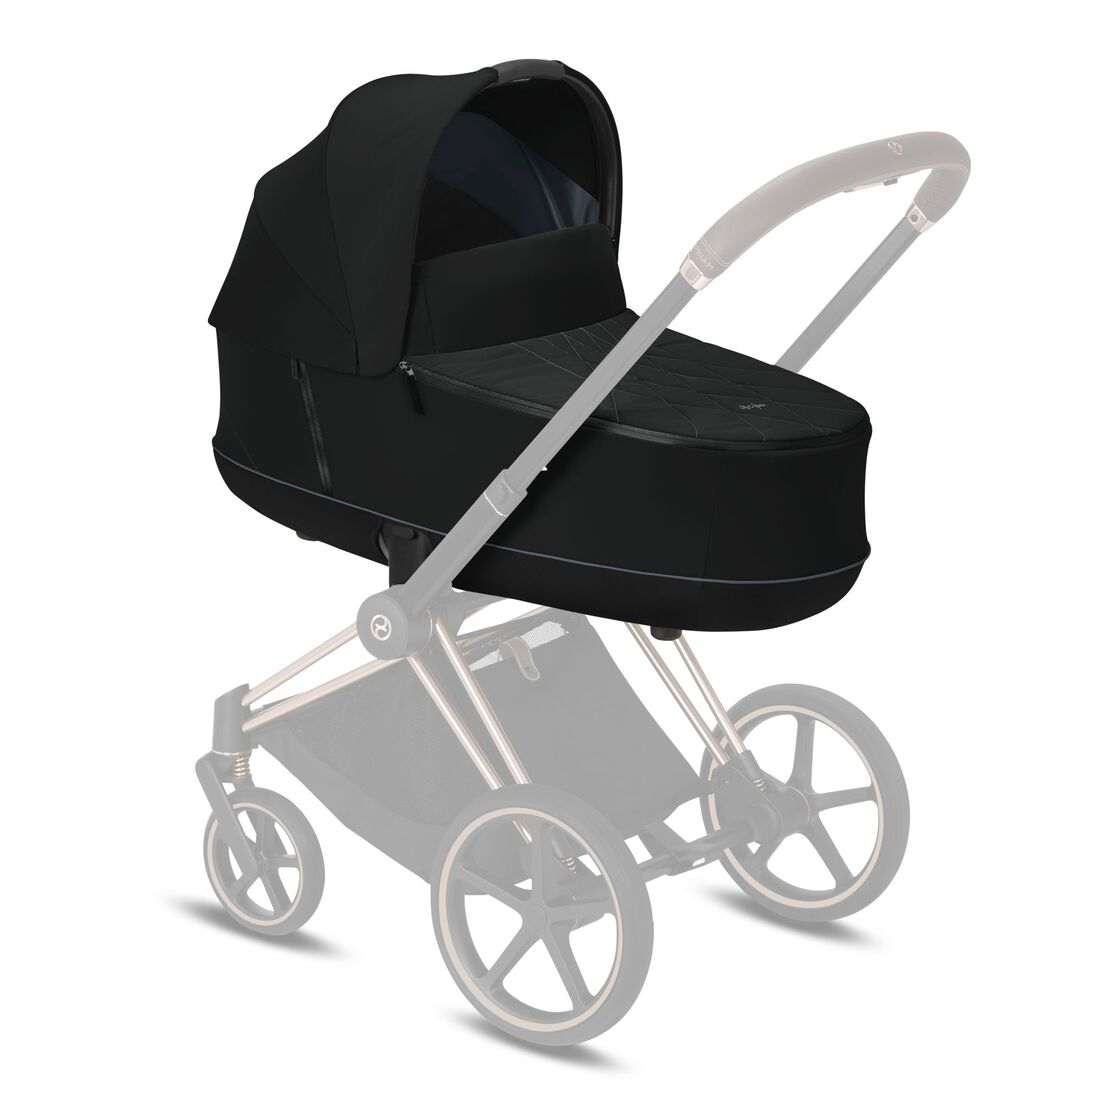 CYBEX Priam Lux Carry Cot - Deep Black in Deep Black large image number 5